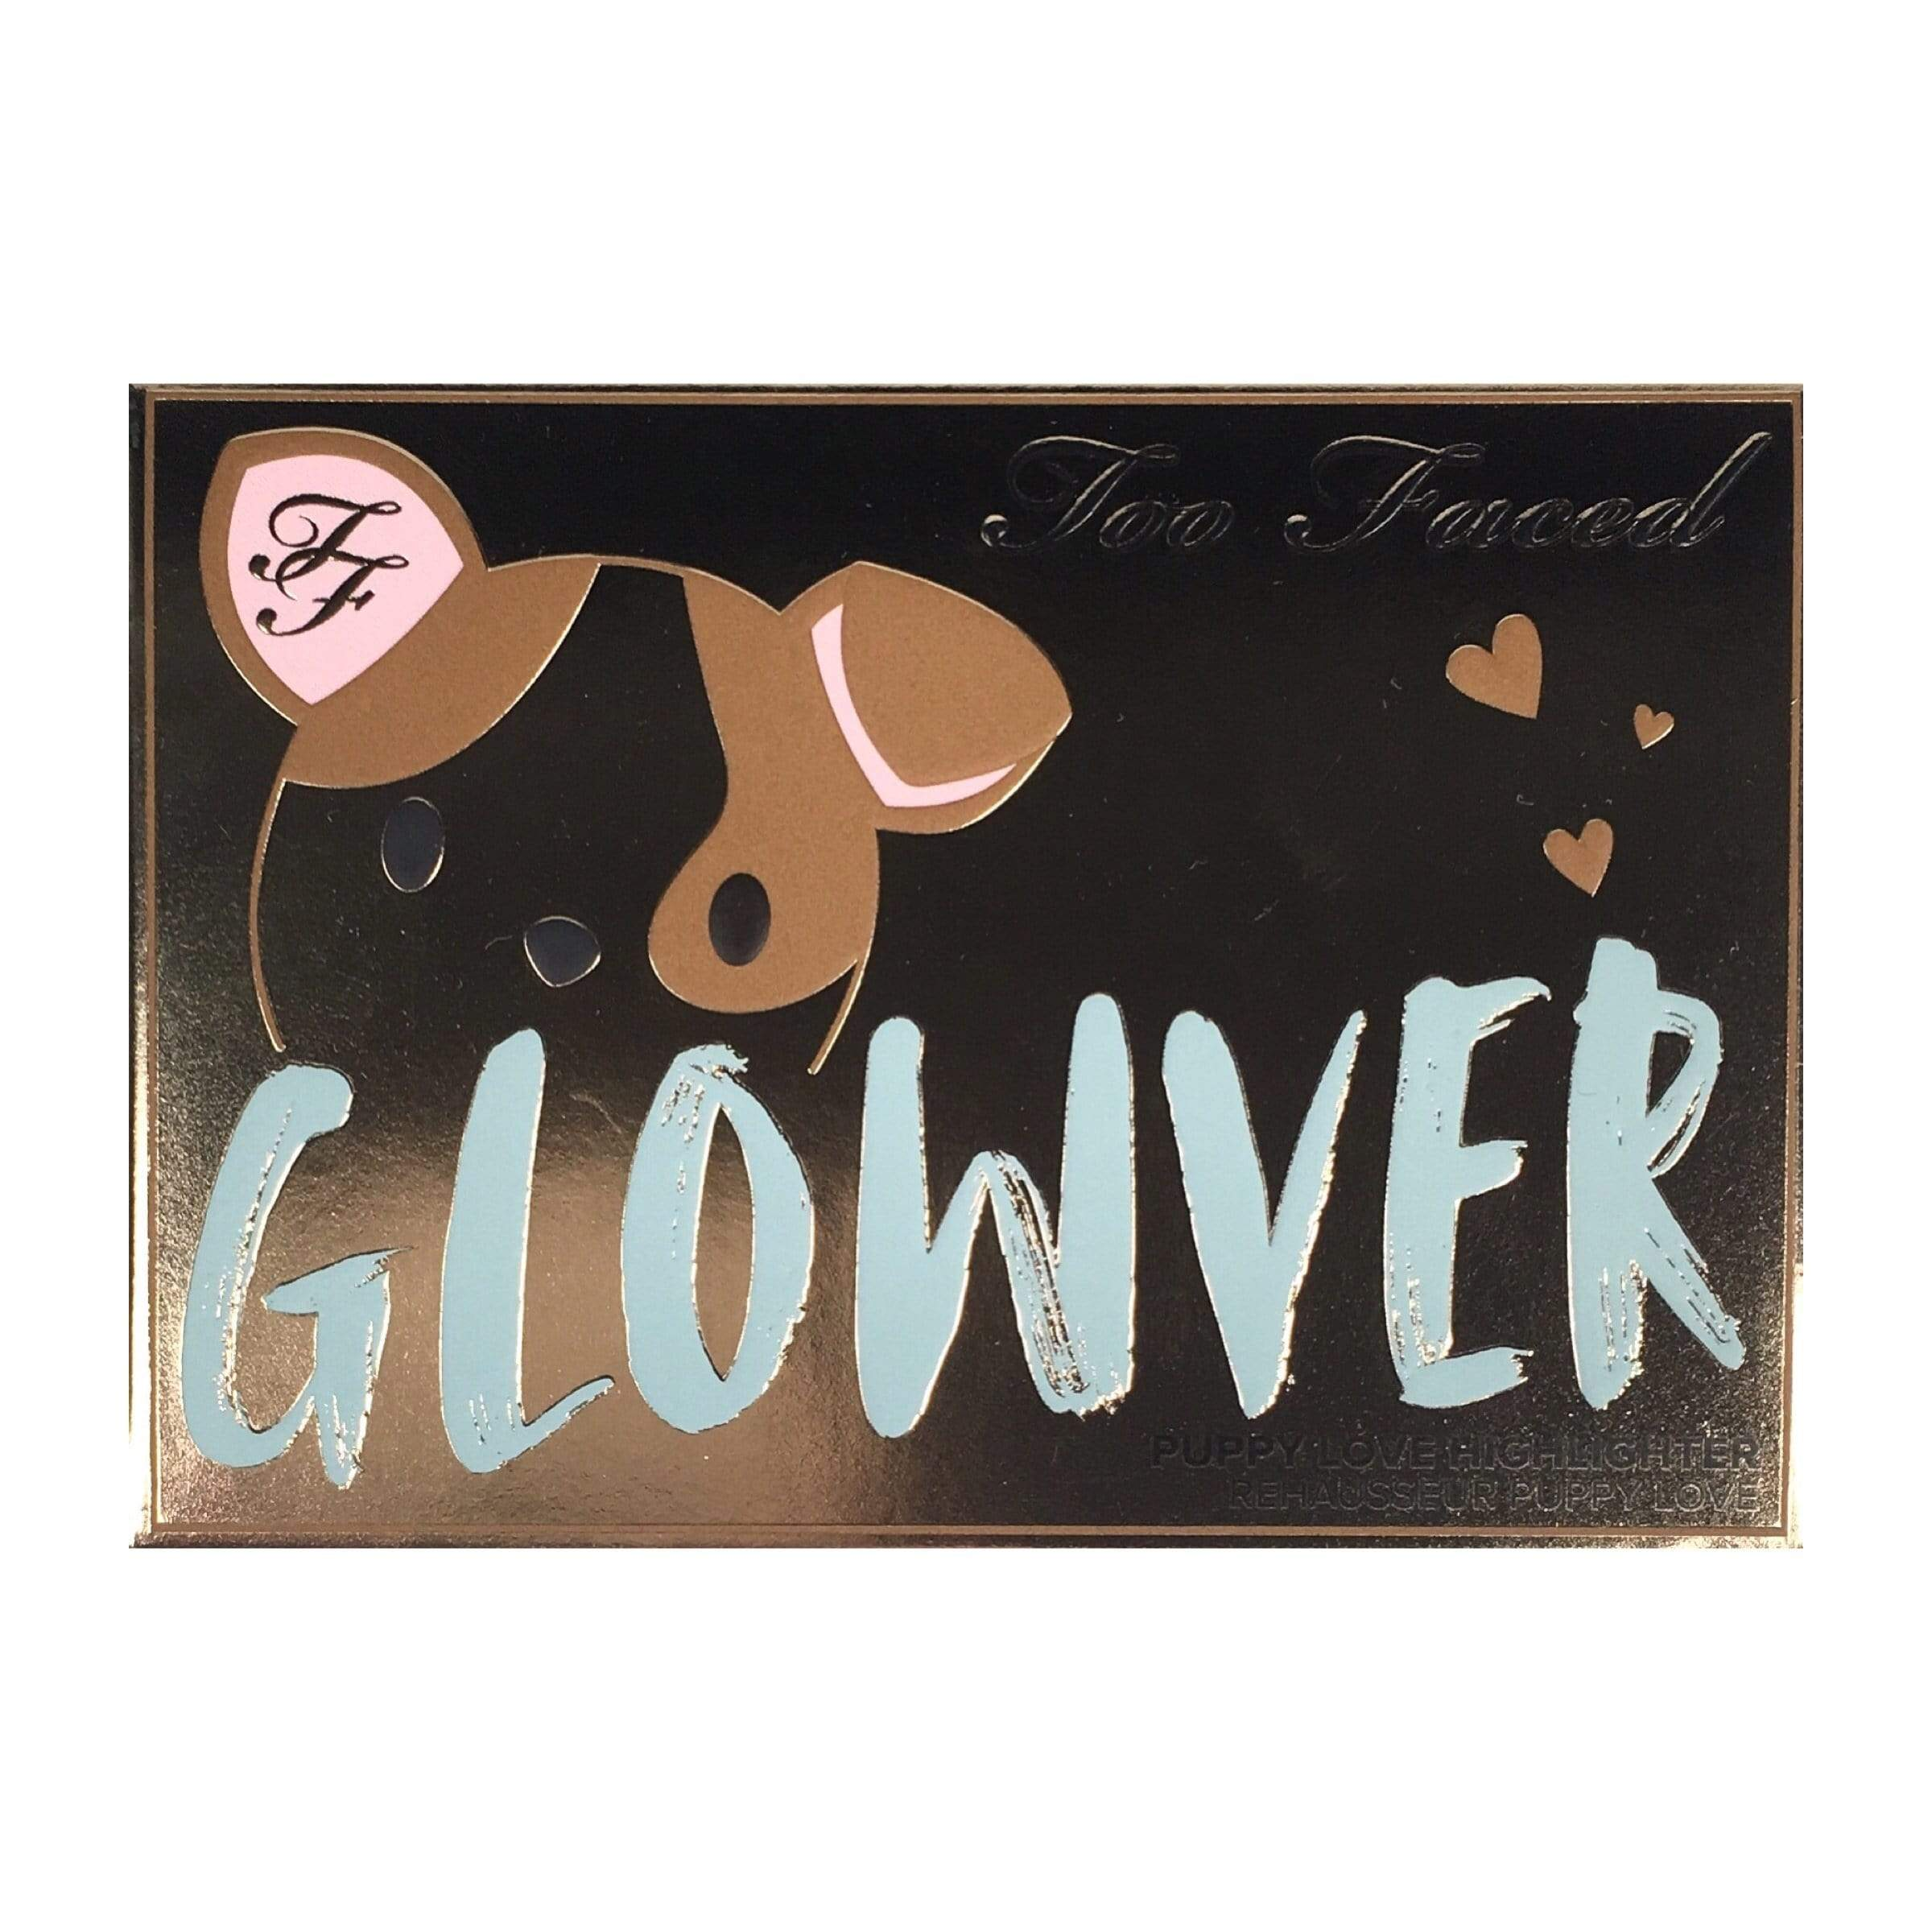 Too Faced highlighter TOO FACED Glowver Puppy Love Highlighter